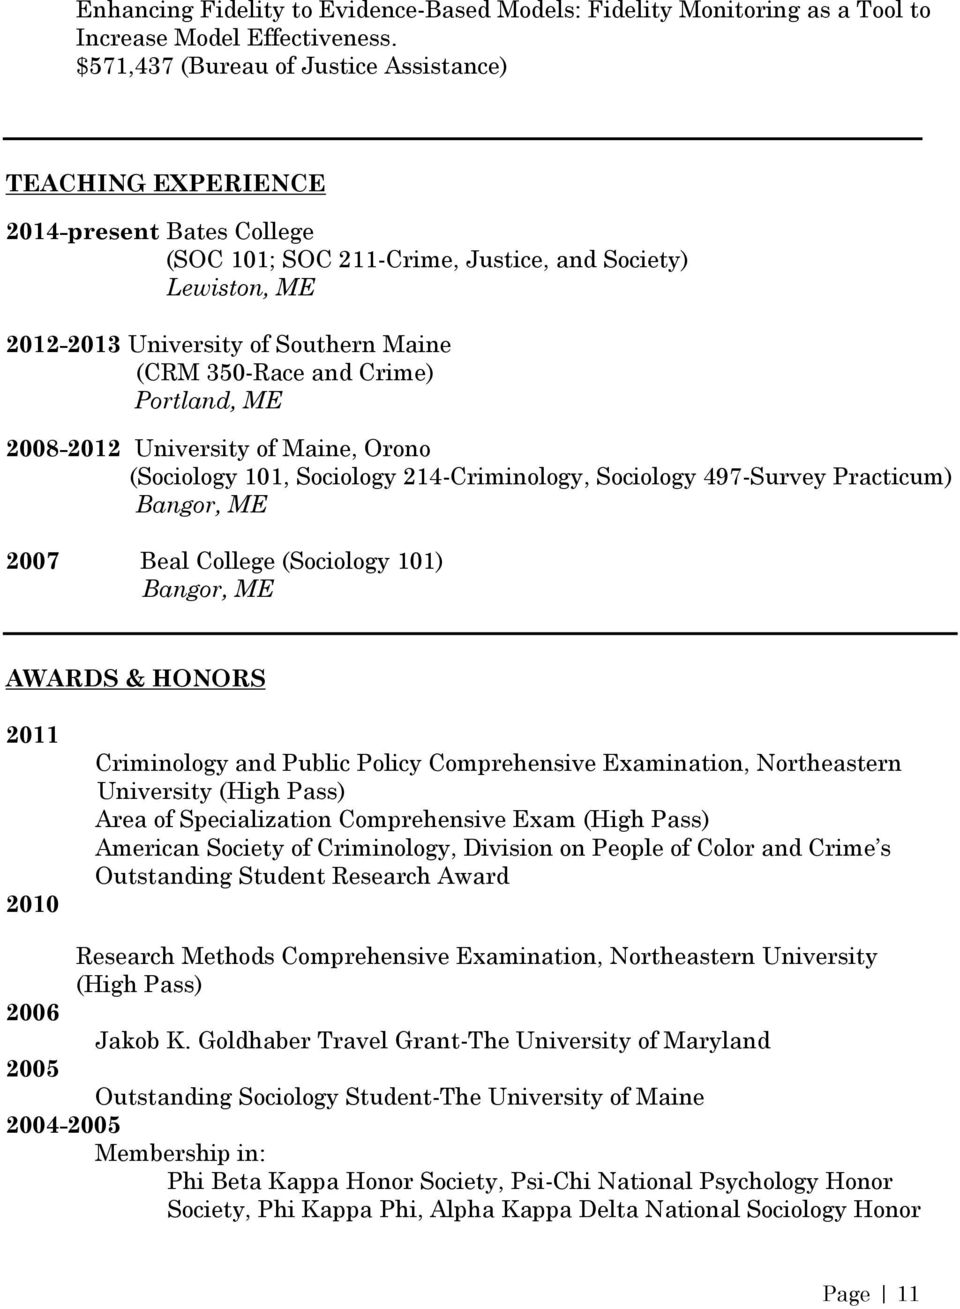 and Crime) Portland, ME 2008-2012 University of Maine, Orono (Sociology 101, Sociology 214-Criminology, Sociology 497-Survey Practicum) Bangor, ME 2007 Beal College (Sociology 101) Bangor, ME AWARDS